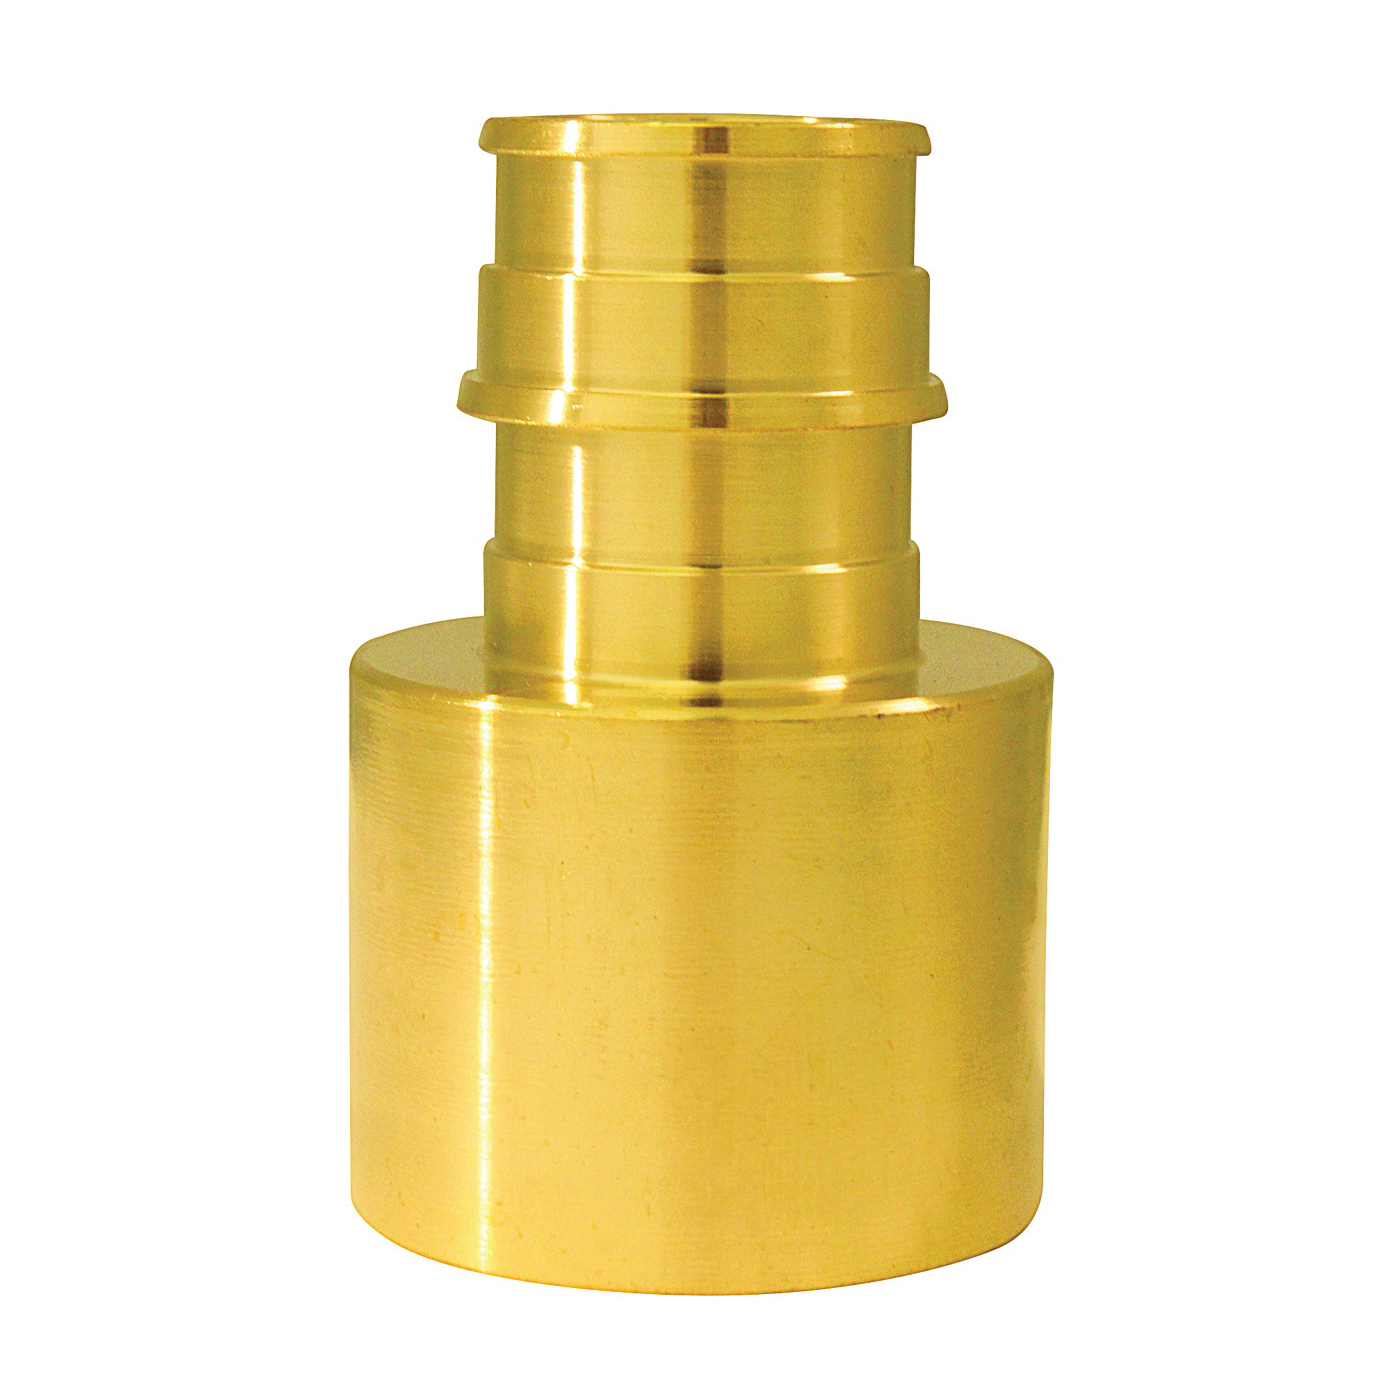 Picture of Apollo ExpansionPEX EPXFS341 Solder Adapter, 3/4 x 1 in, Barb x Female Sweat, Brass, 200 psi Pressure